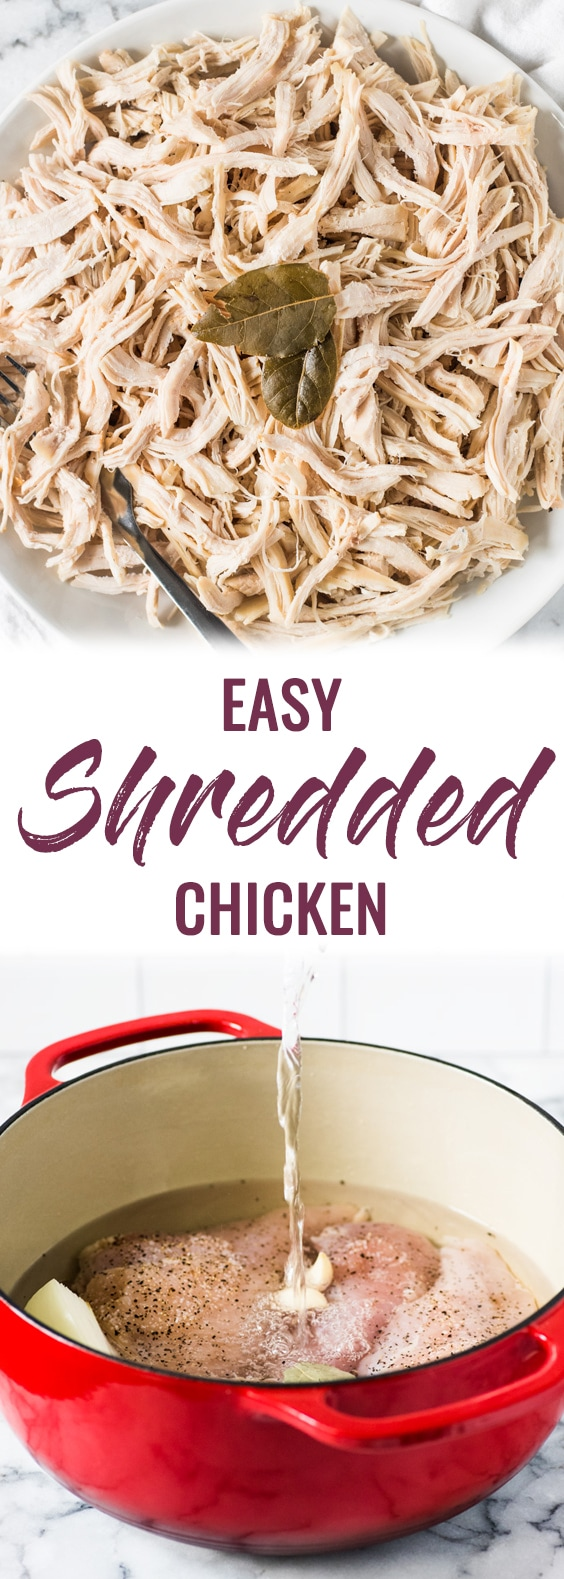 An Easy Shredded Chicken recipe that makes juicy, flavorful and tender chicken every time on the stove top. Use it inomelets, salads, tacos, nachos, soups, rice bowls, burritos, enchiladas and more! #shreddedchicken #chicken #paleo #glutenfree